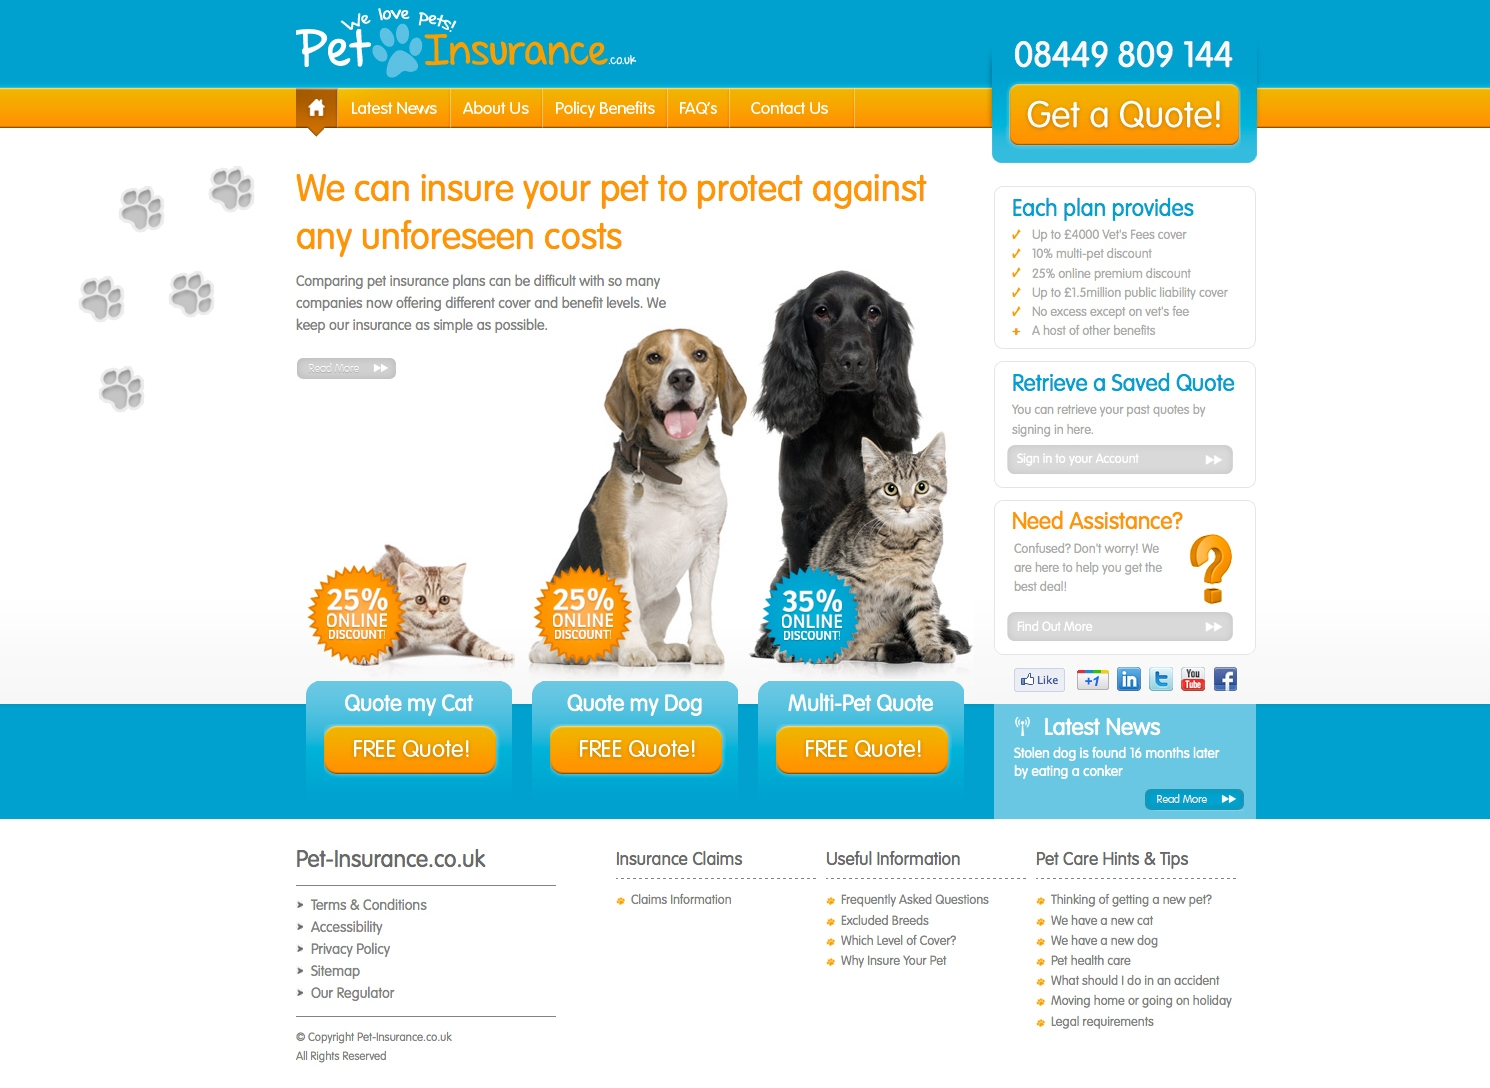 pet insurance website screengrab Pet Insurance Website Relaunches With Special Offer